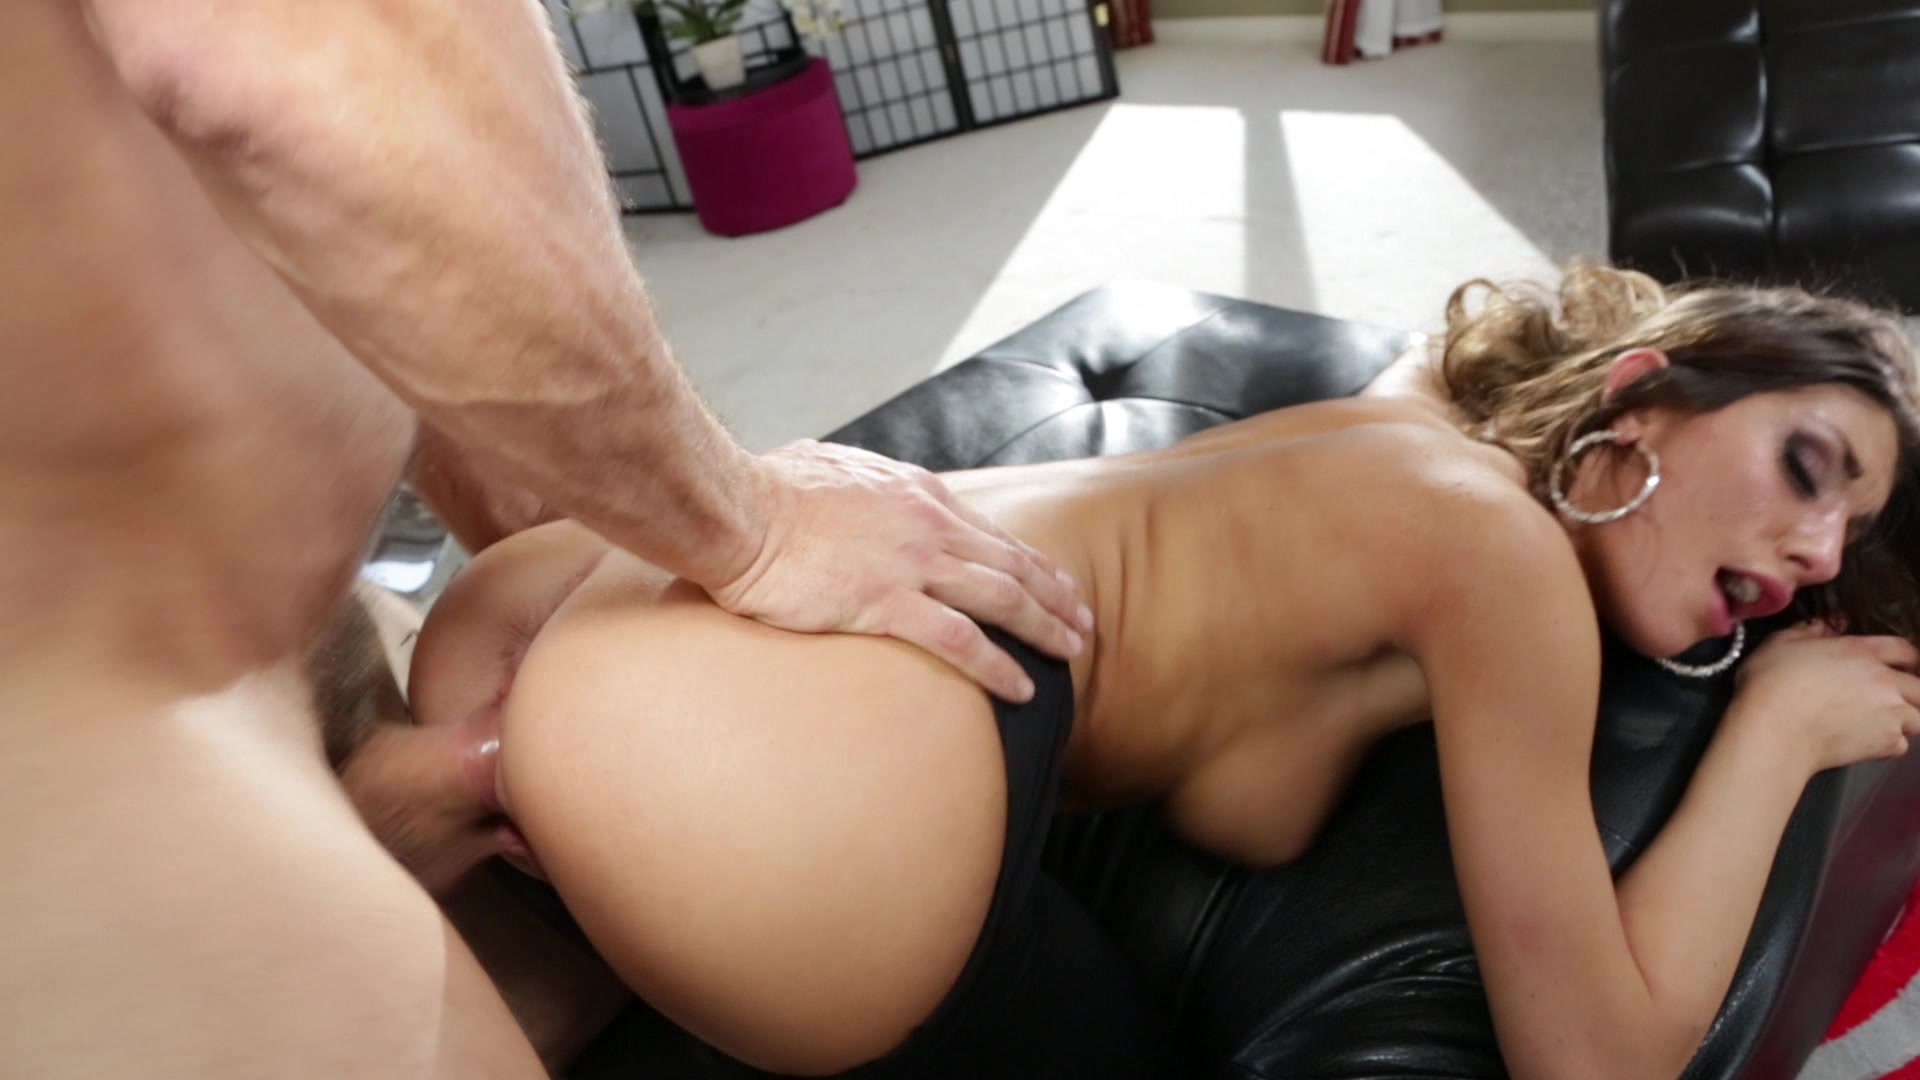 Ripped apart butt movie, best hd porn pics ever